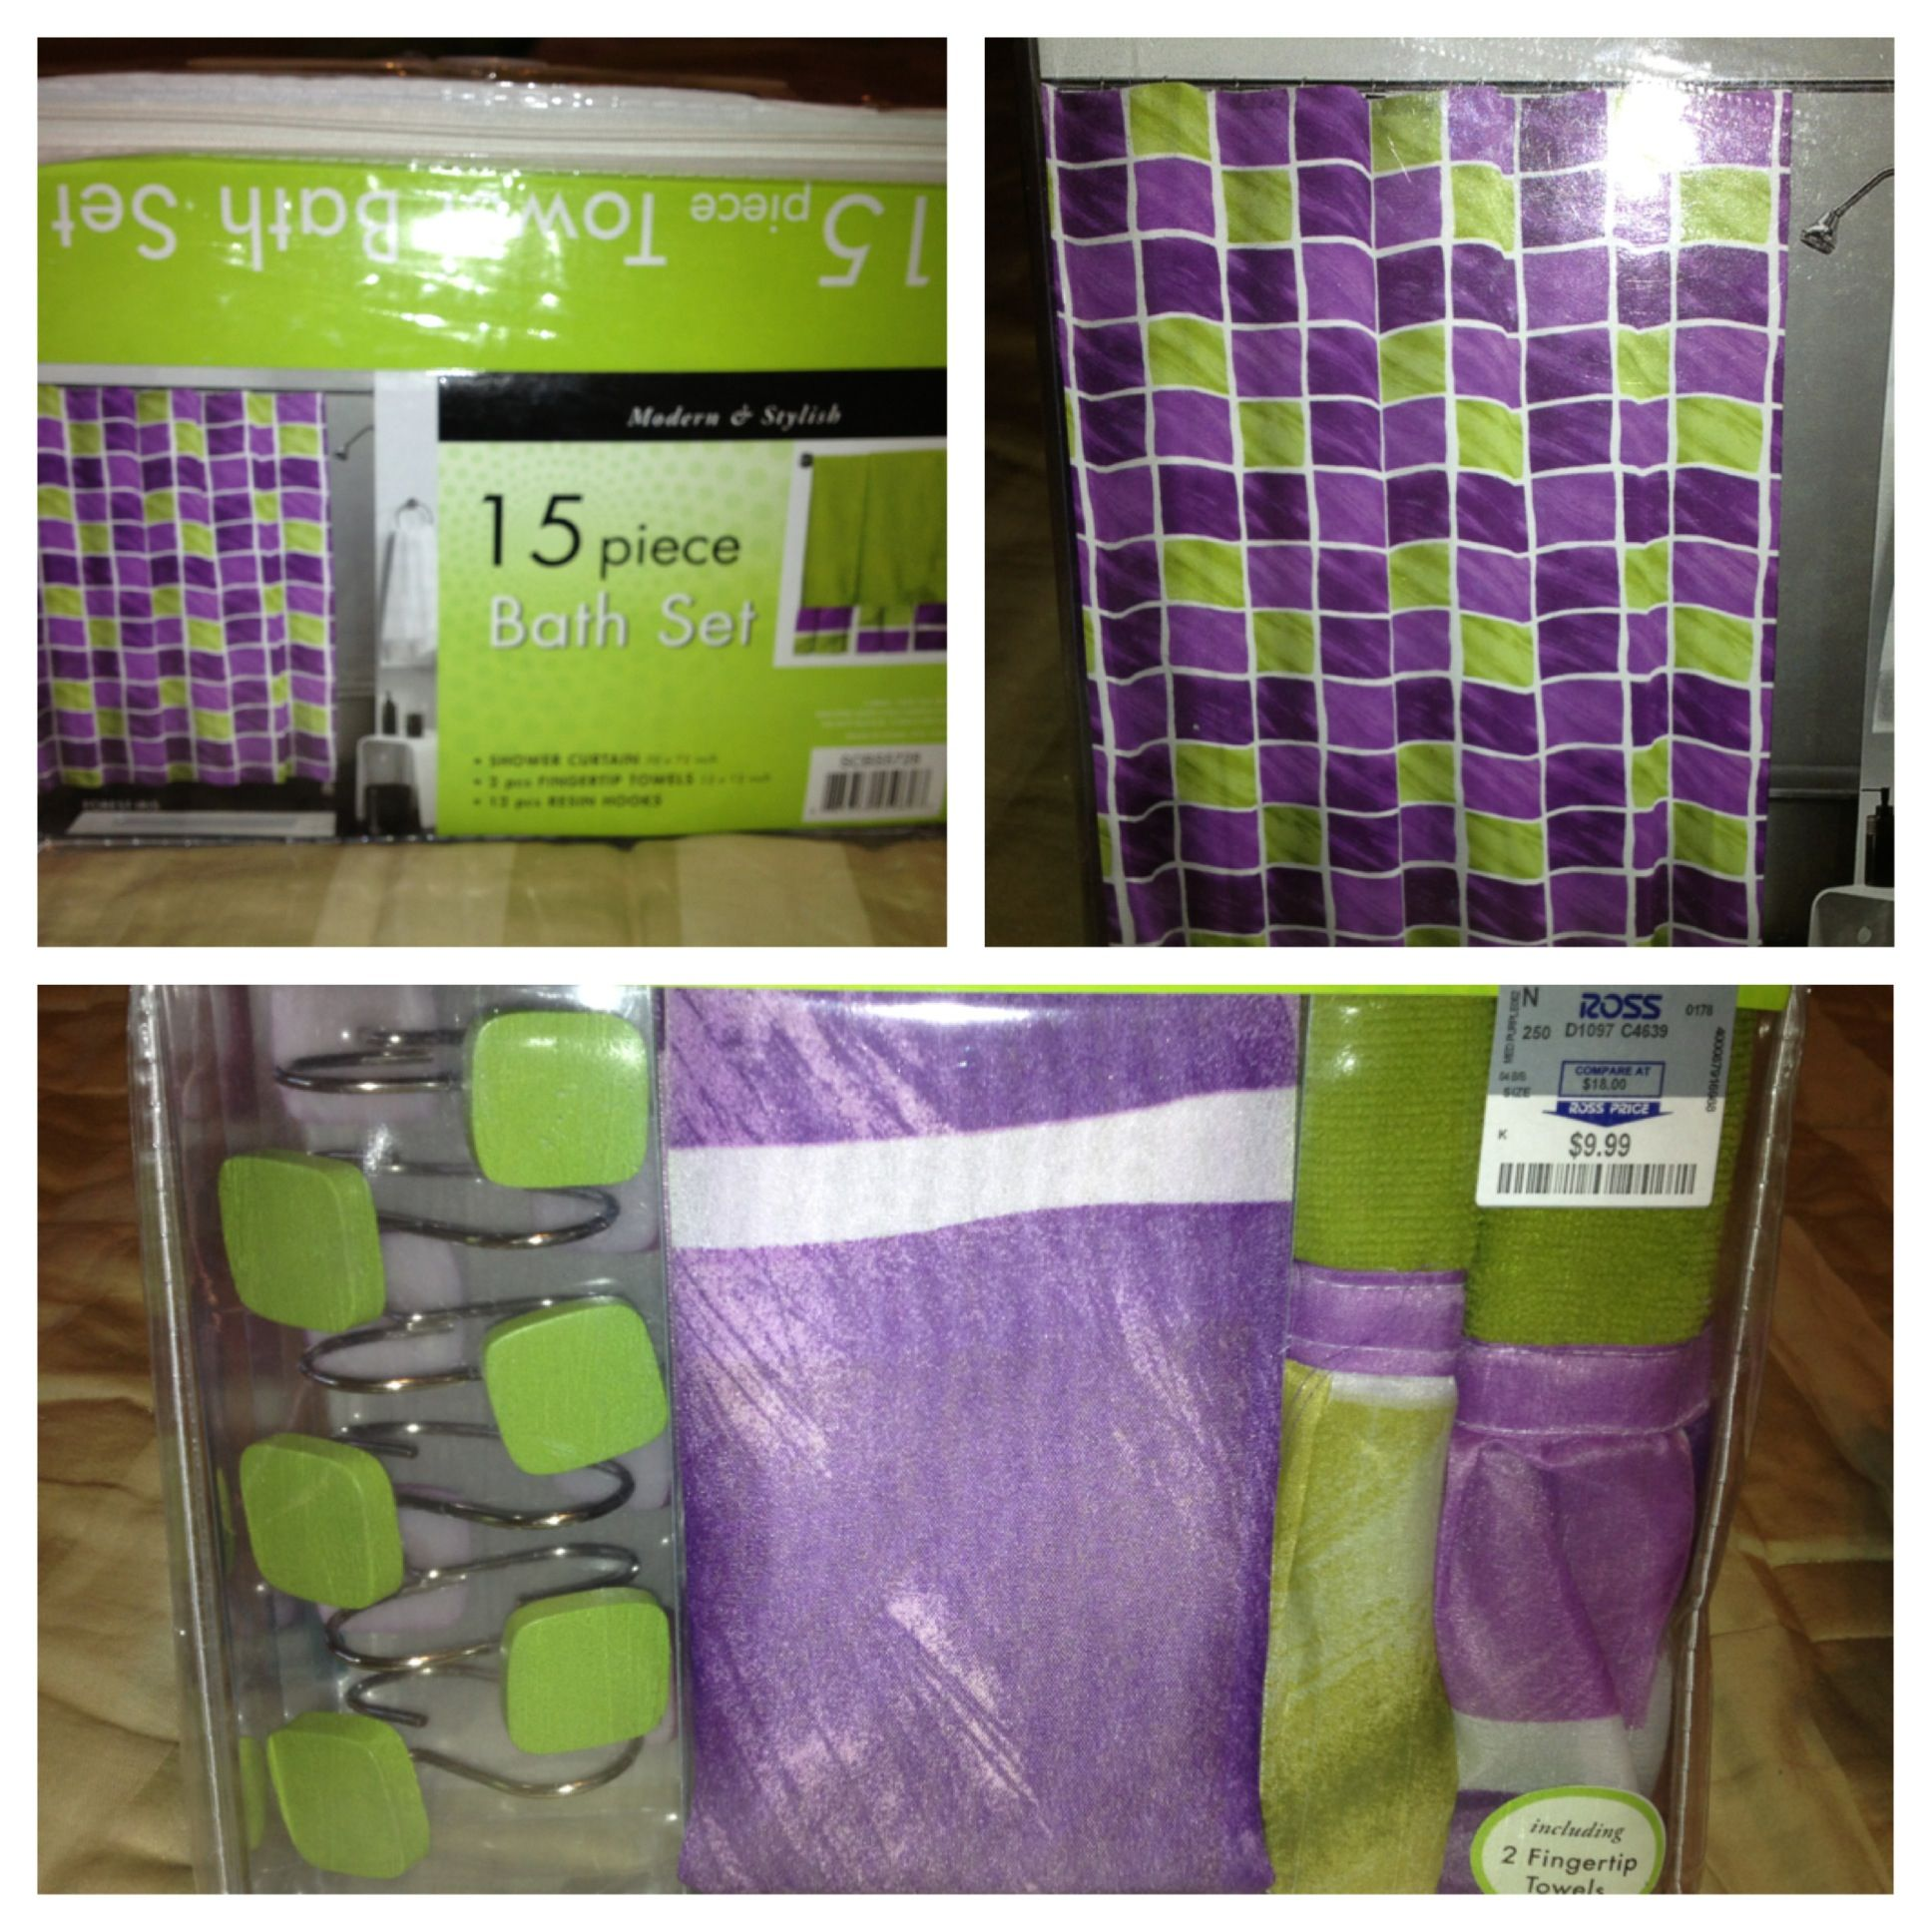 I have also officially found a shower curtain! Purple and green ...